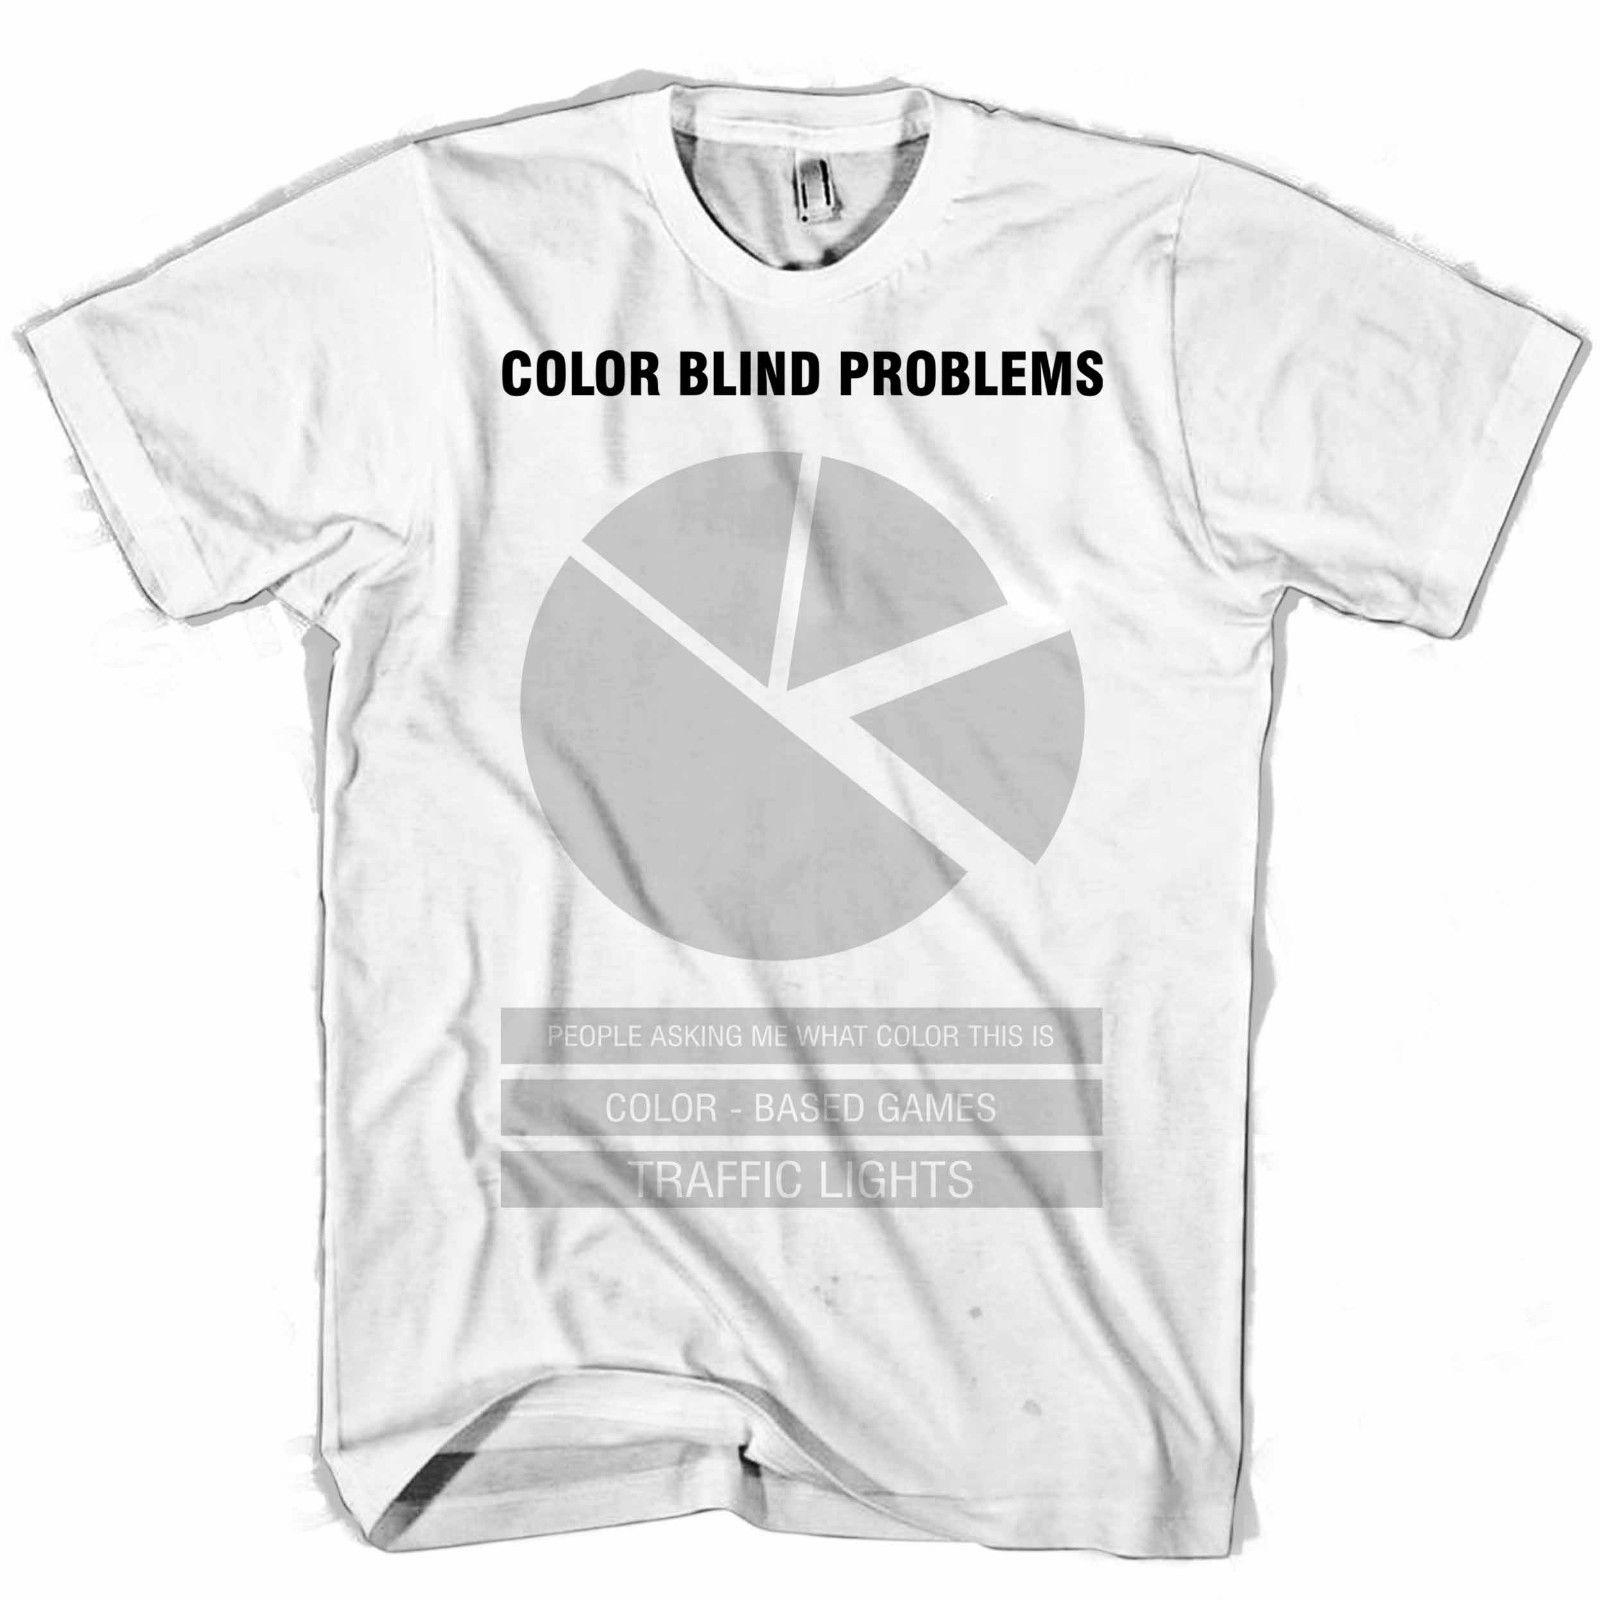 10e38f48 Color Blind Problems Funny Cover Men's / Women's T Shirt short sleeve men  Tee T shirt o-neck knitted comfortable fabric